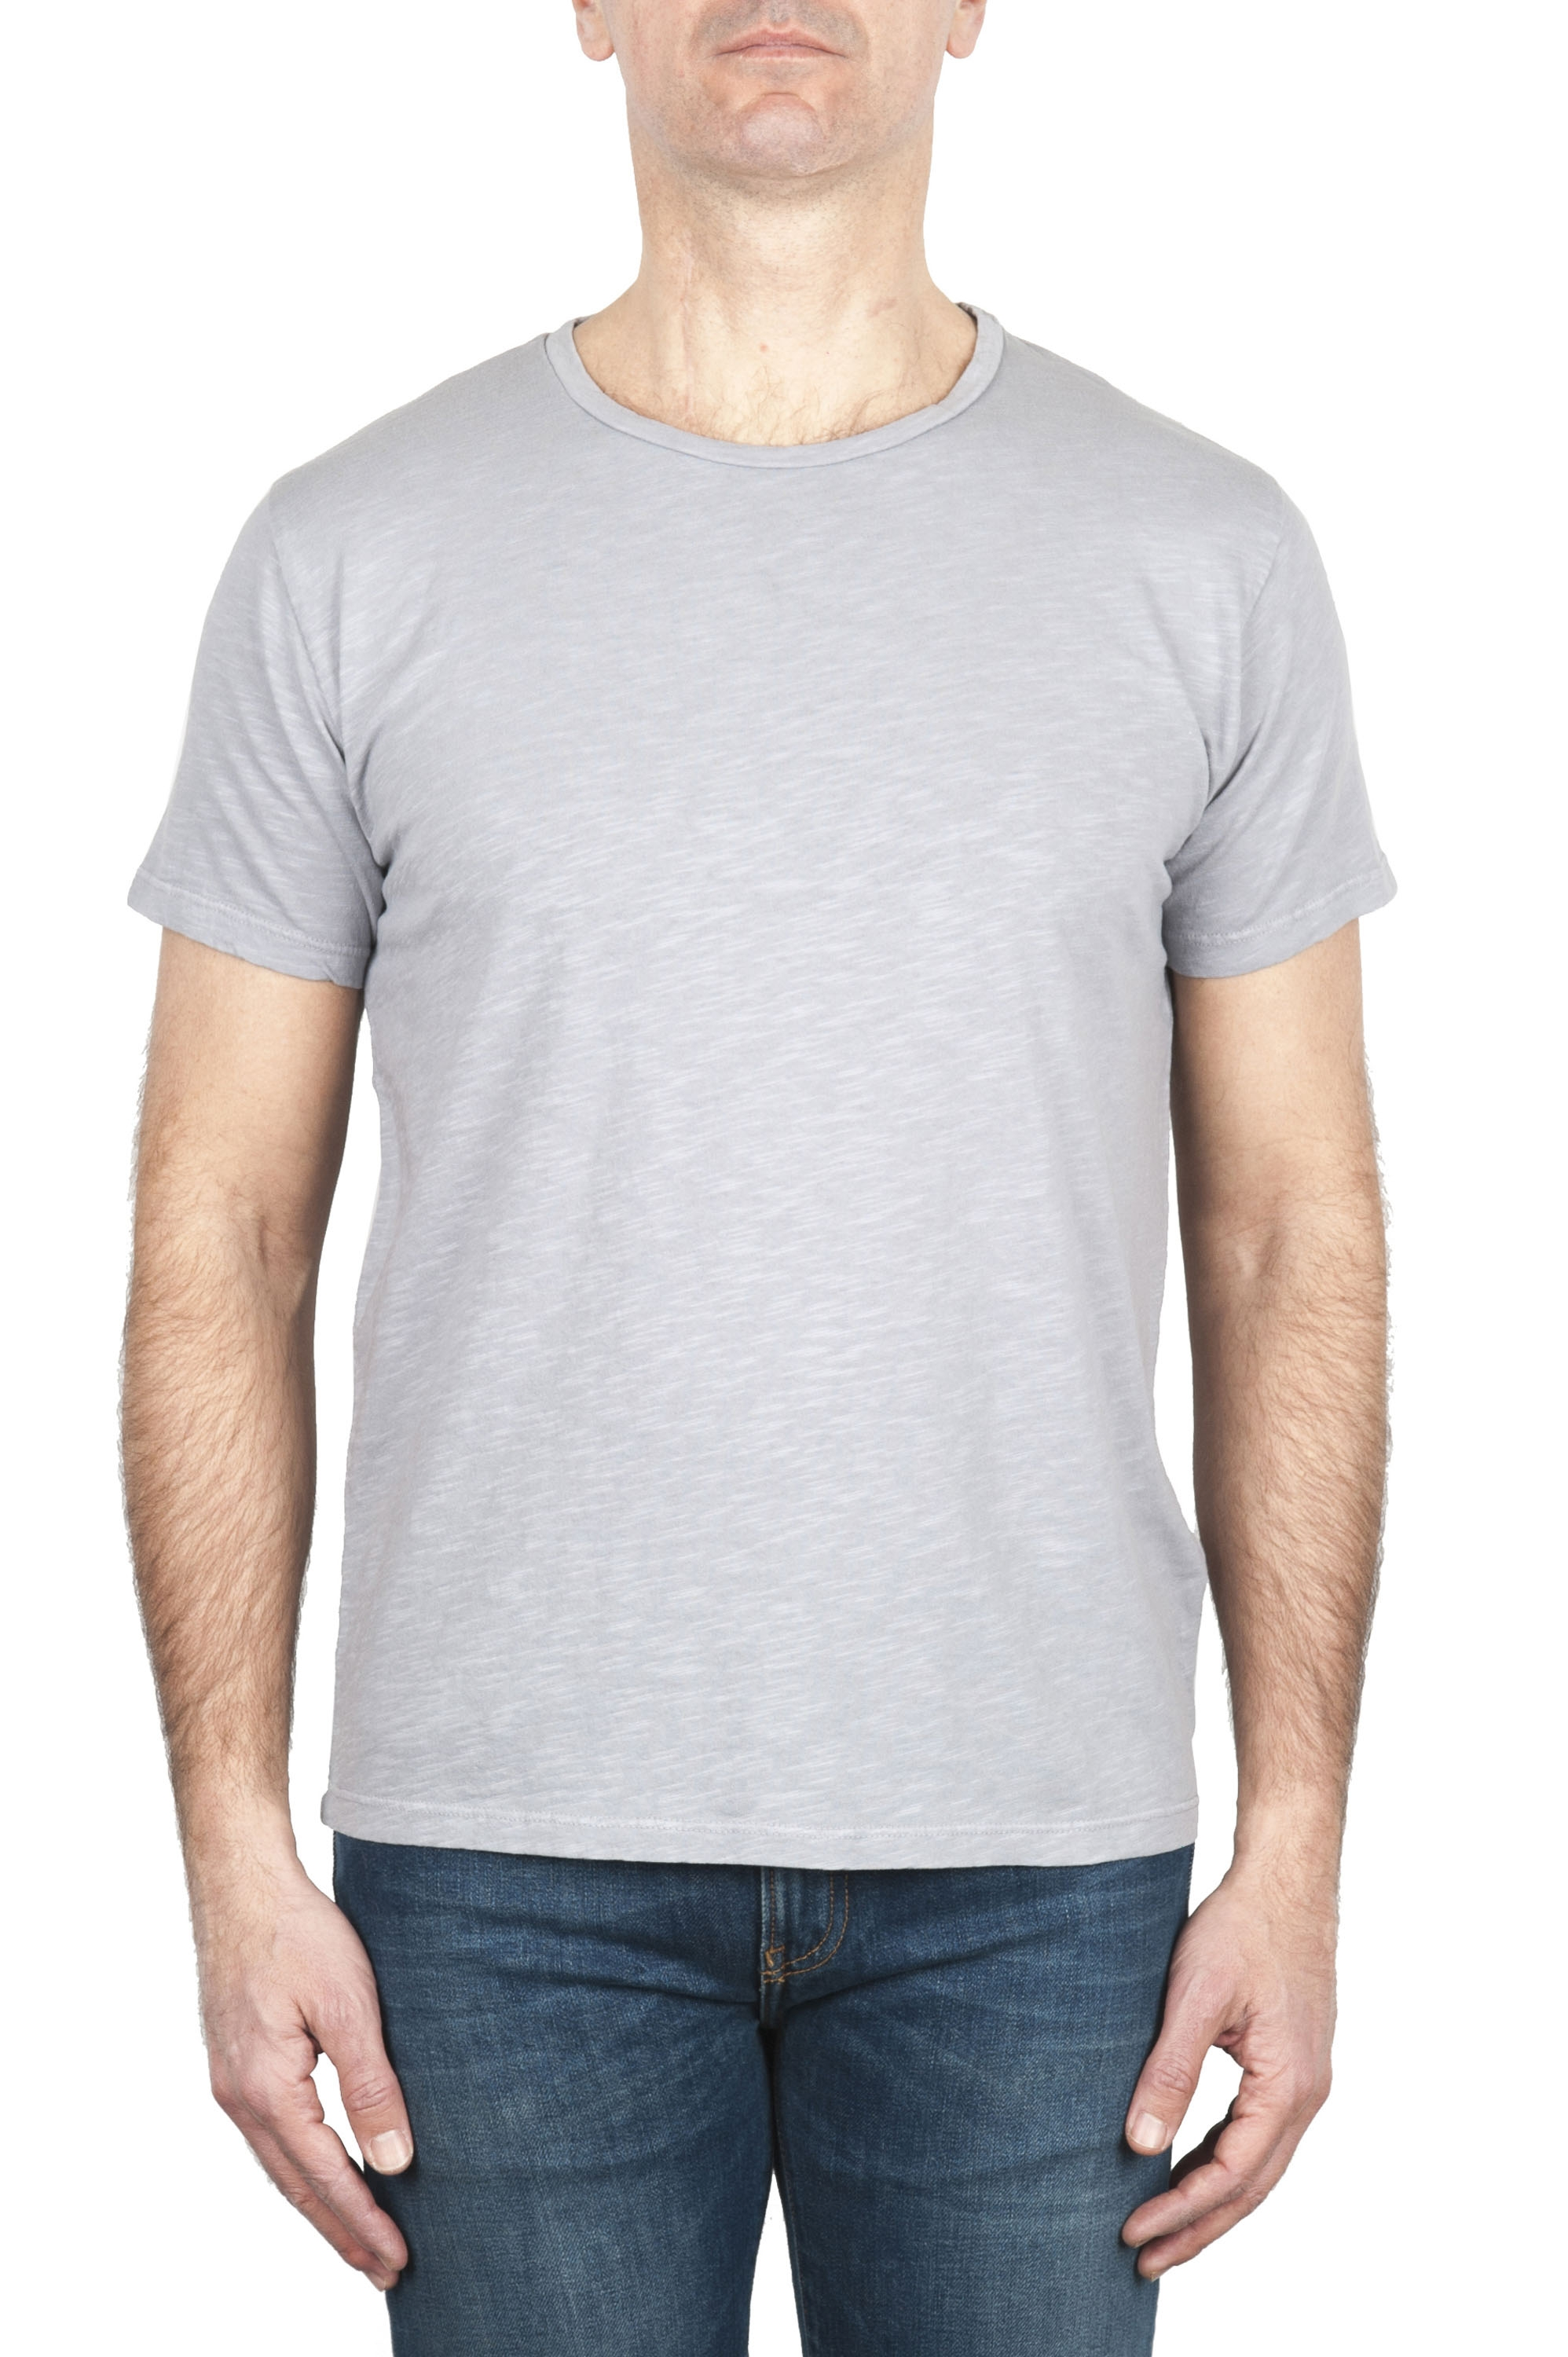 SBU 01976_2020SS Flamed cotton scoop neck t-shirt grey 01